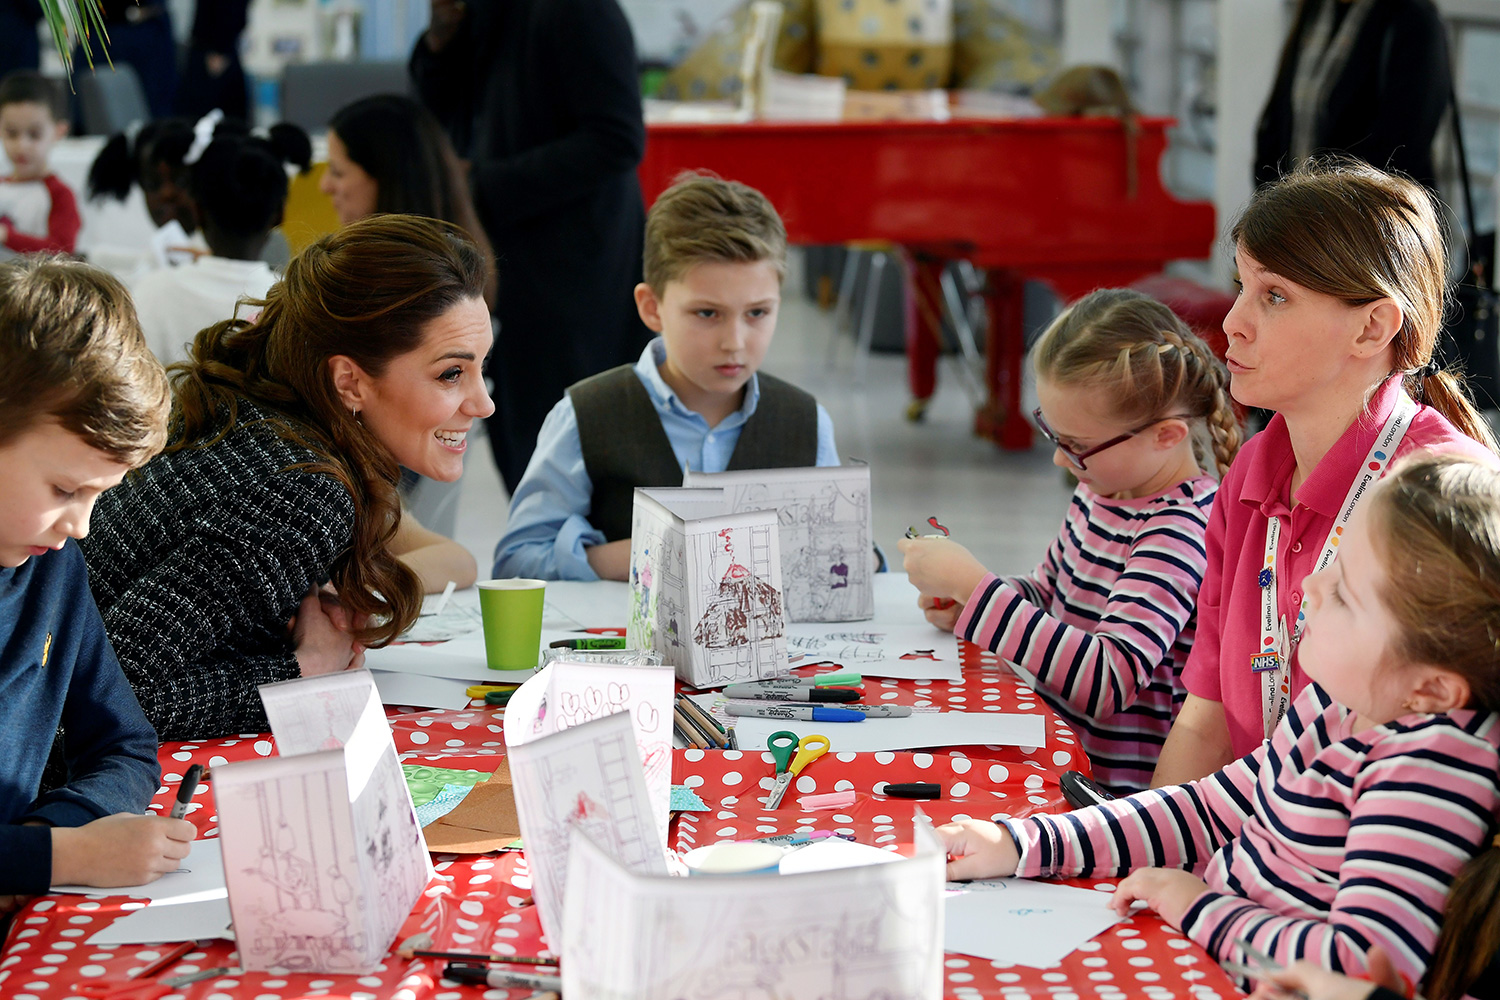 Catherine, Duchess of Cambridge interacts with children at a creative workshop run by the National Portrait Gallerys Hospital Programme during a visit to the Evelina London Childrens Hospital in London on January 28, 2020